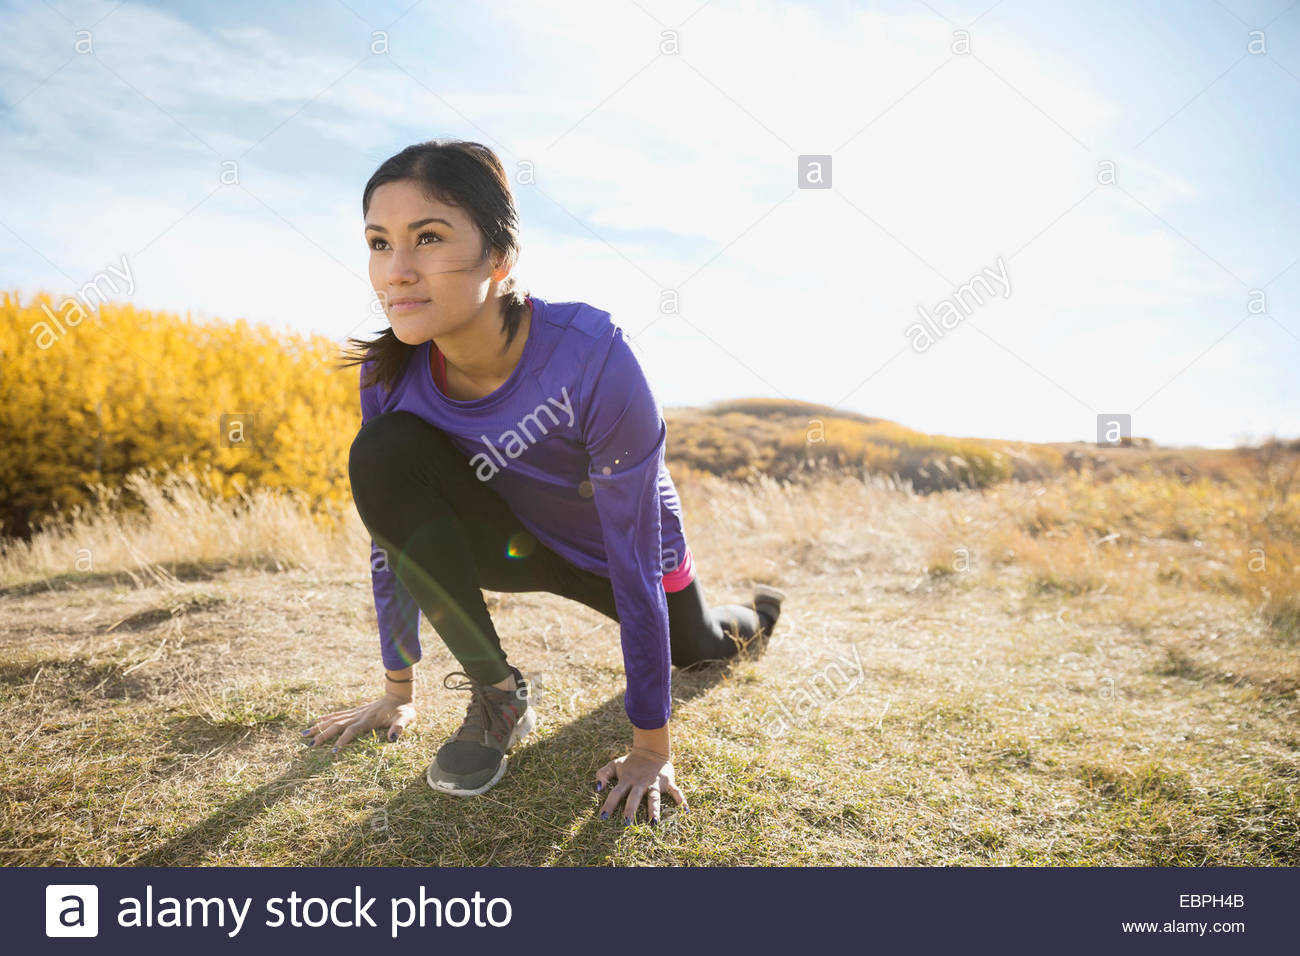 Runner stretching in sunny rural field - Stock Image